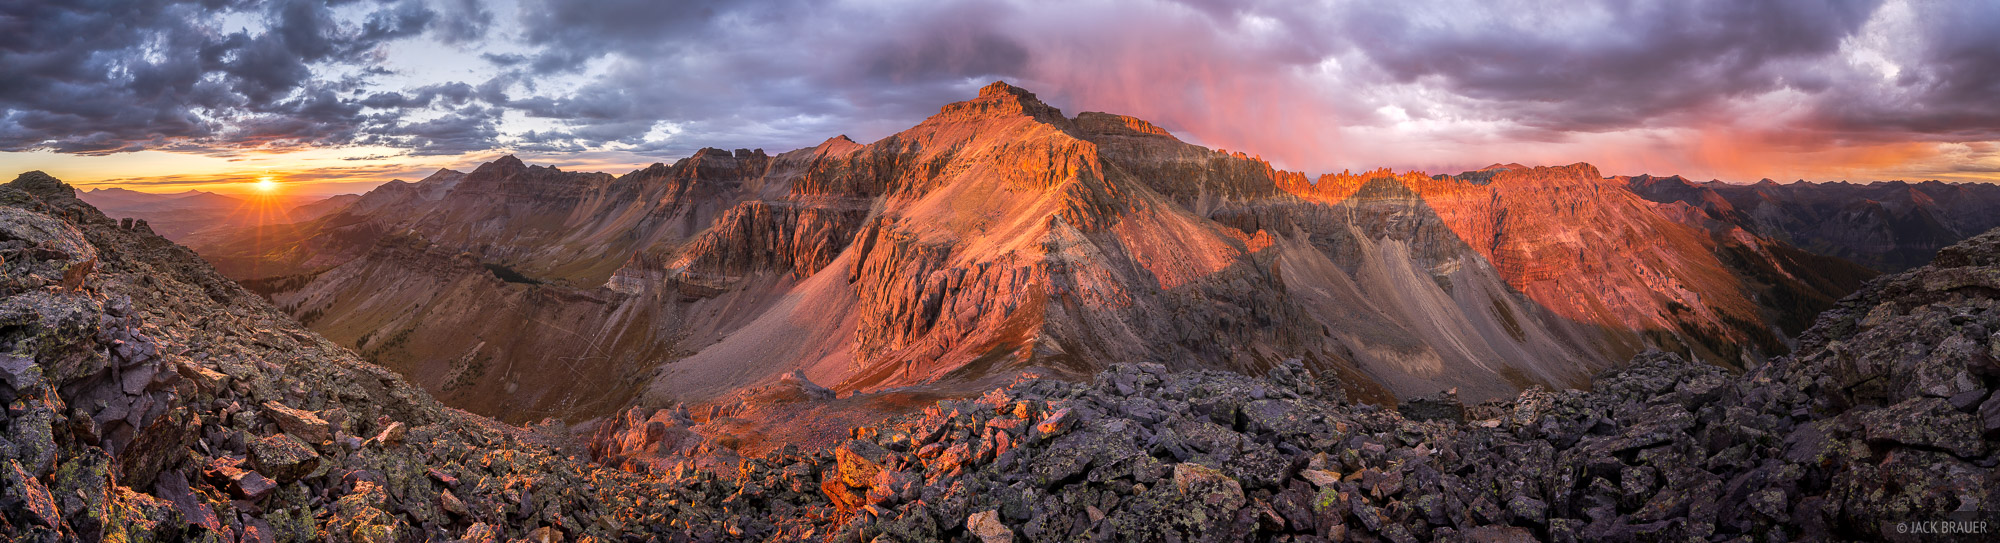 A mind-bending, nearly 360º panoramic view of brilliant sunset light on Mount Emma (13,581 ft.) and the Sneffels Range, as seen...